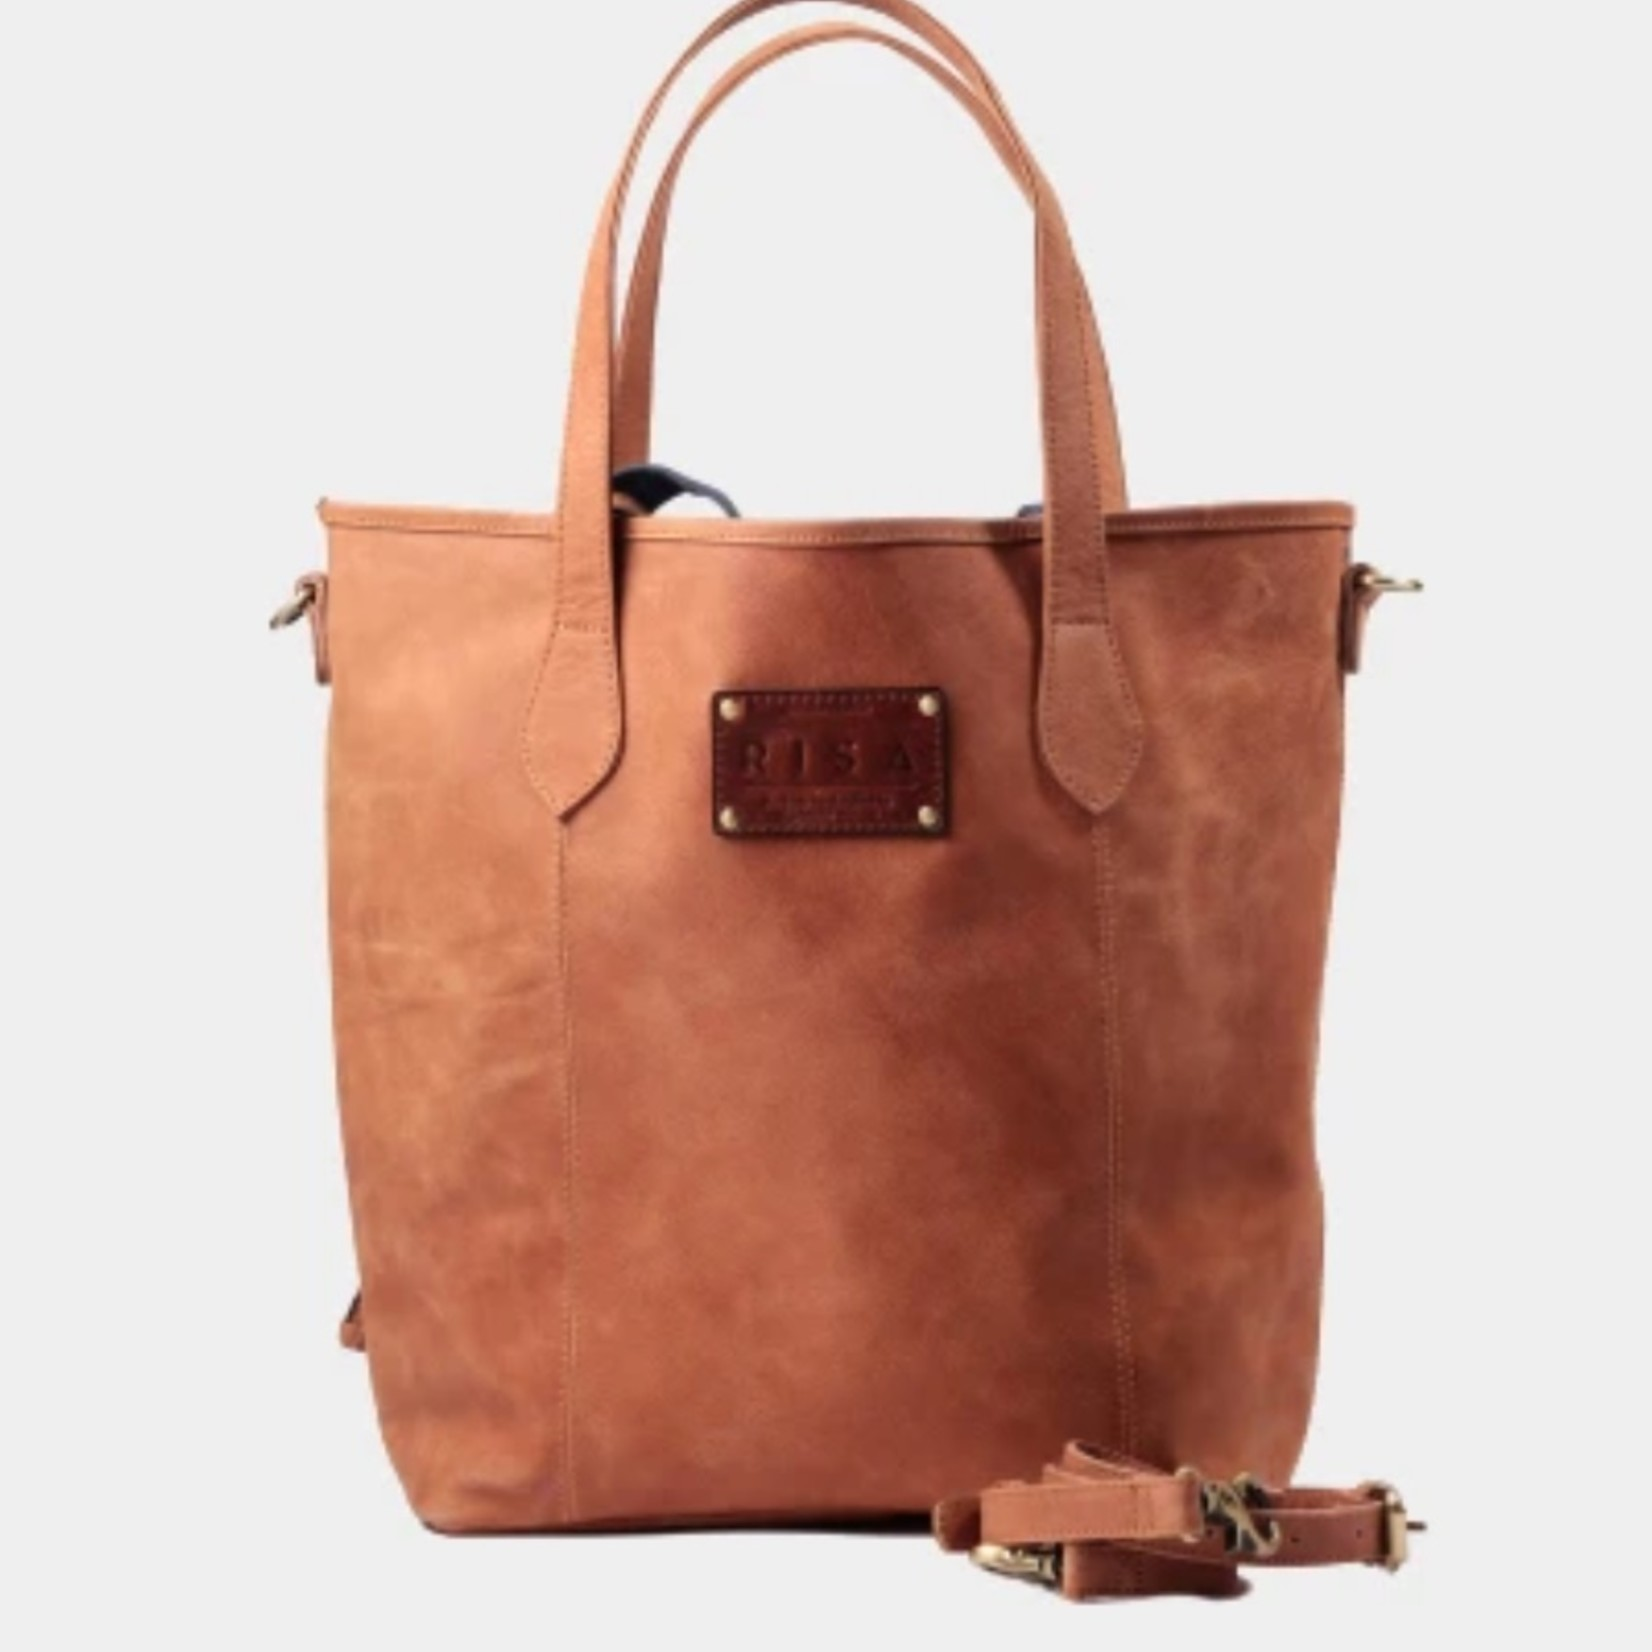 Marie Bag - Brown Leather